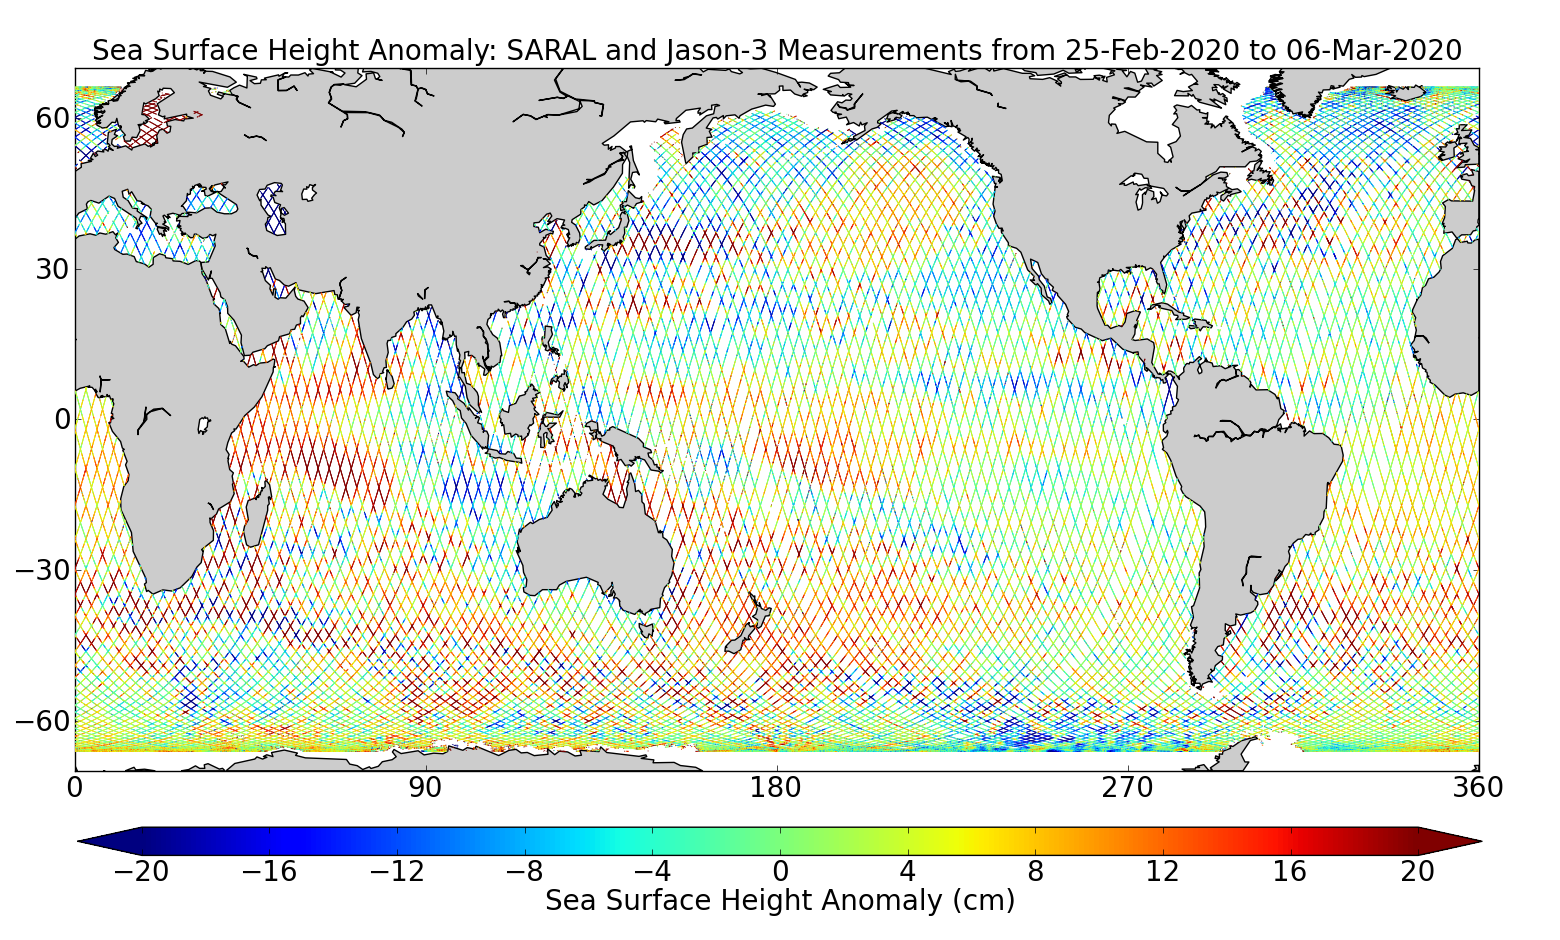 Sea Surface Height Anomaly: SARAL and Jason-3 Measurements from 25-Feb-2020 to 06-Mar-2020